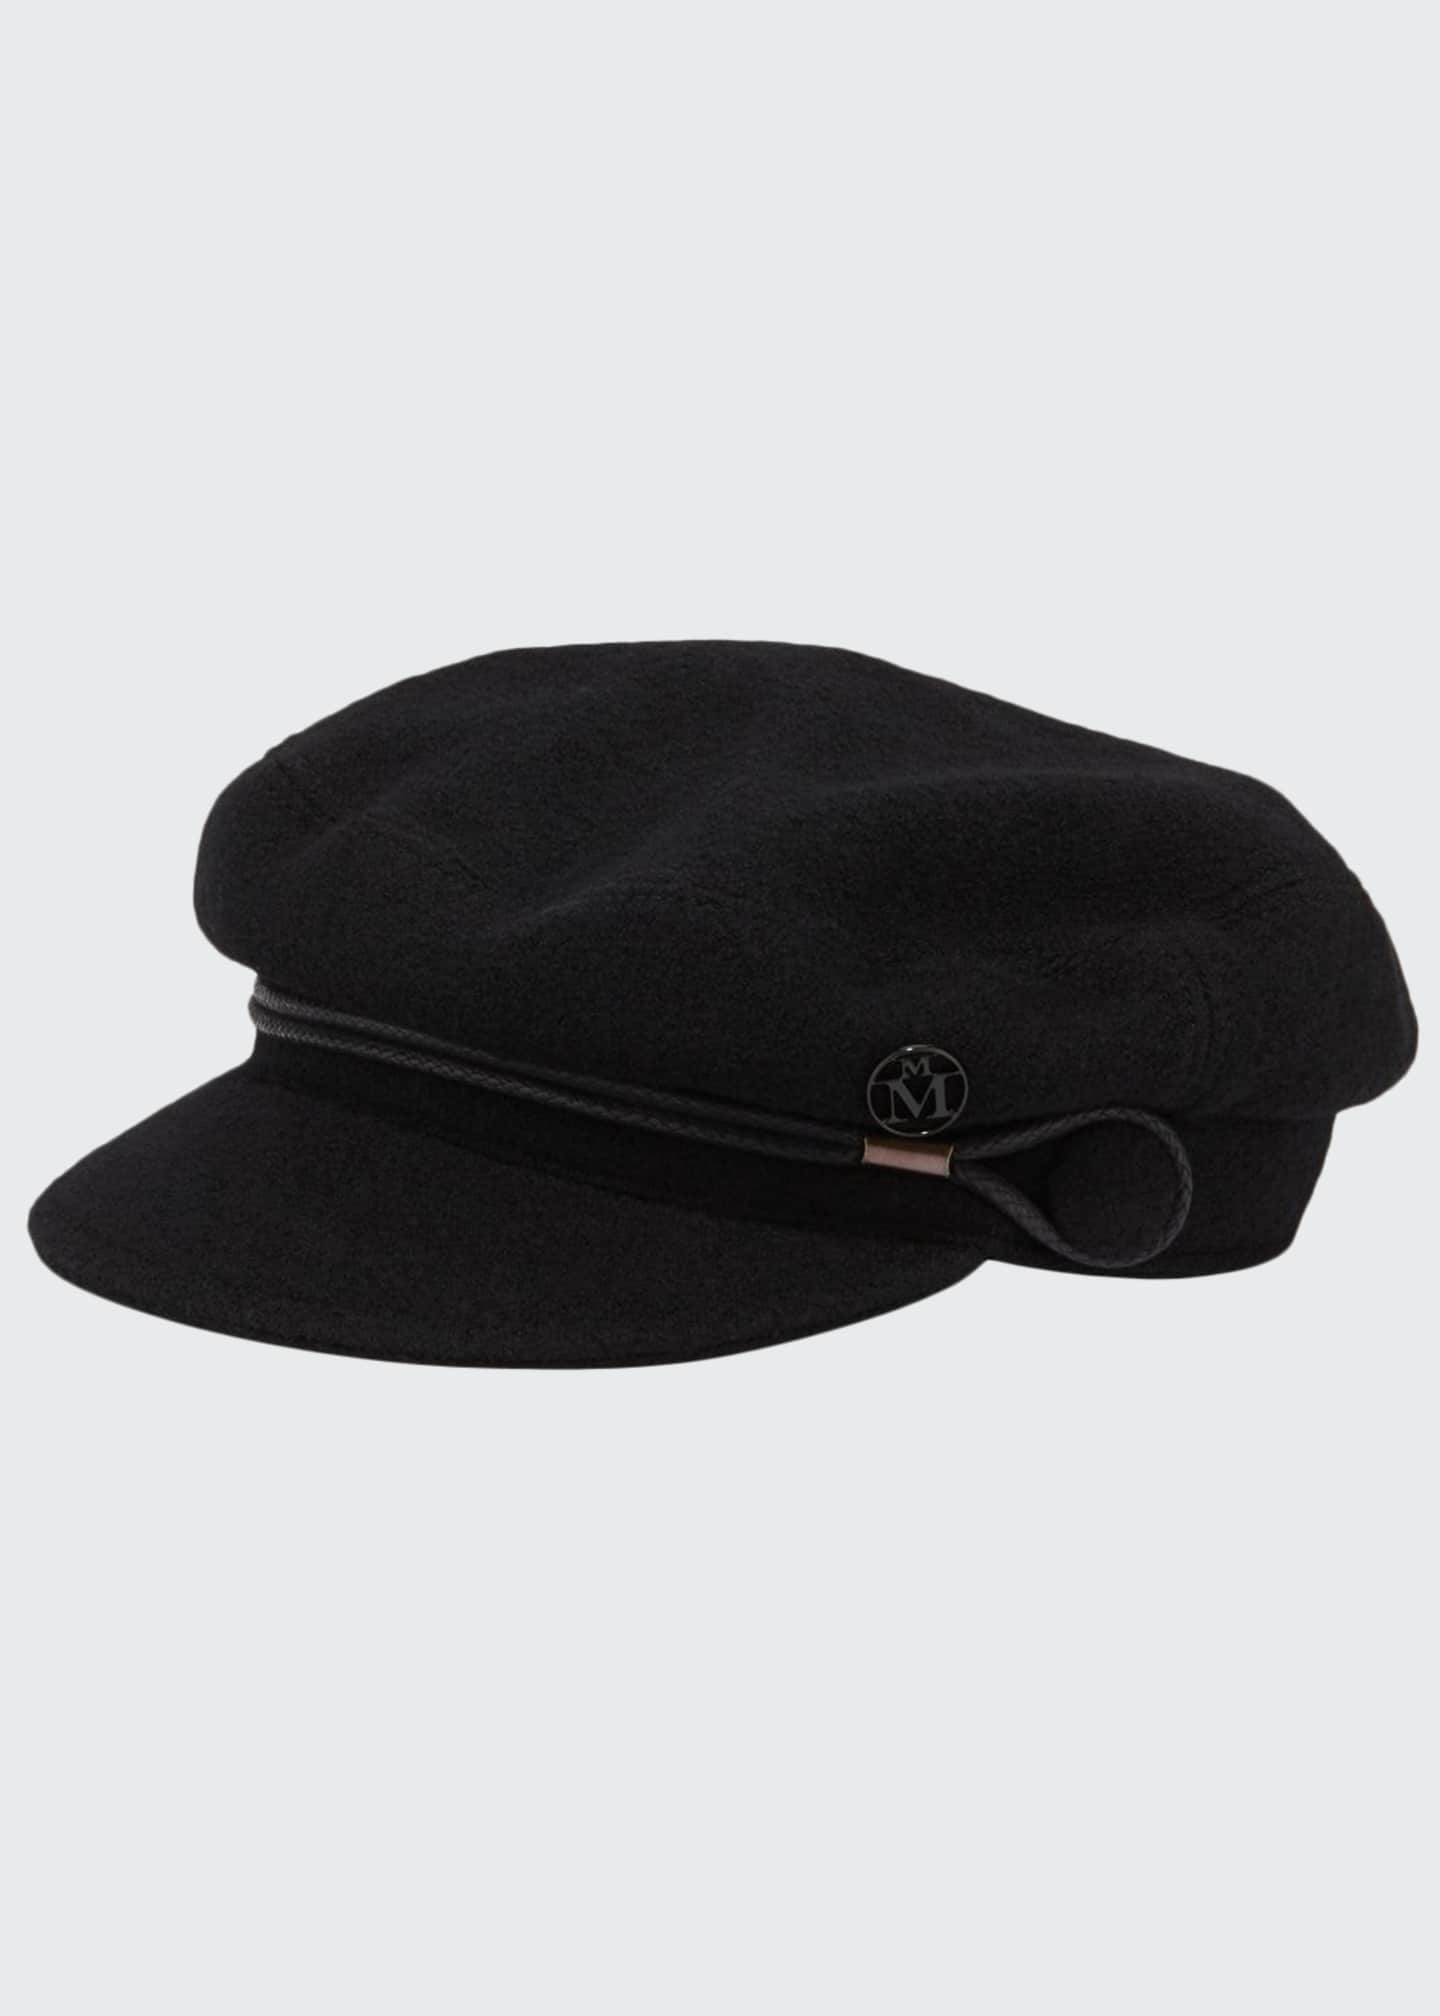 Image 1 of 1: New Abby Newsboy Hat